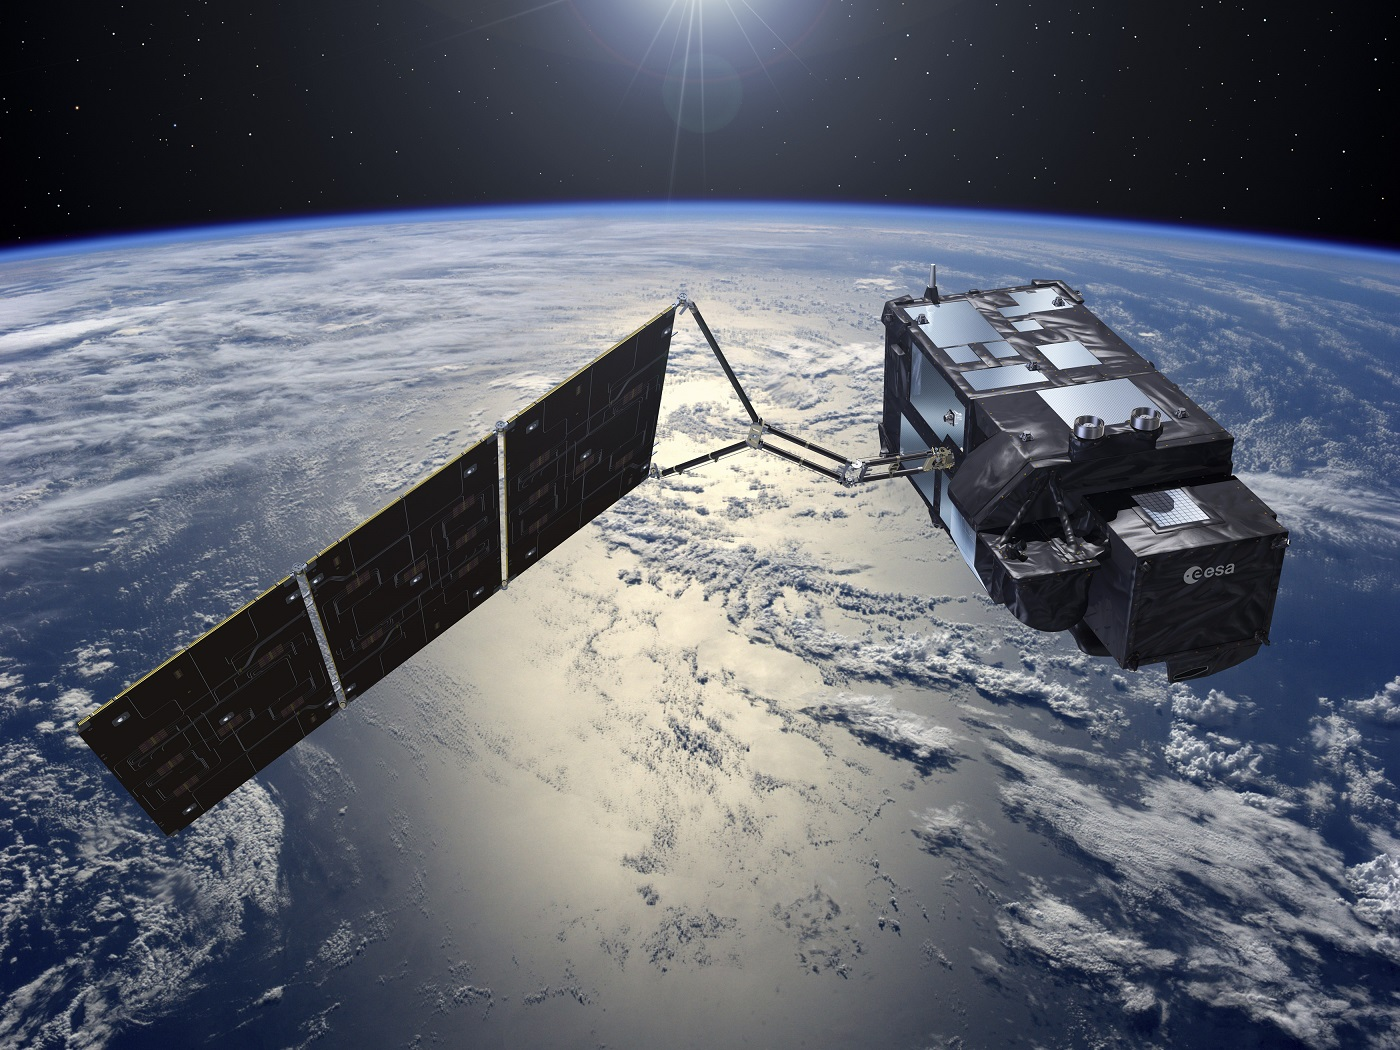 Artist's rendering of the Sentinel-3A satellite in space.